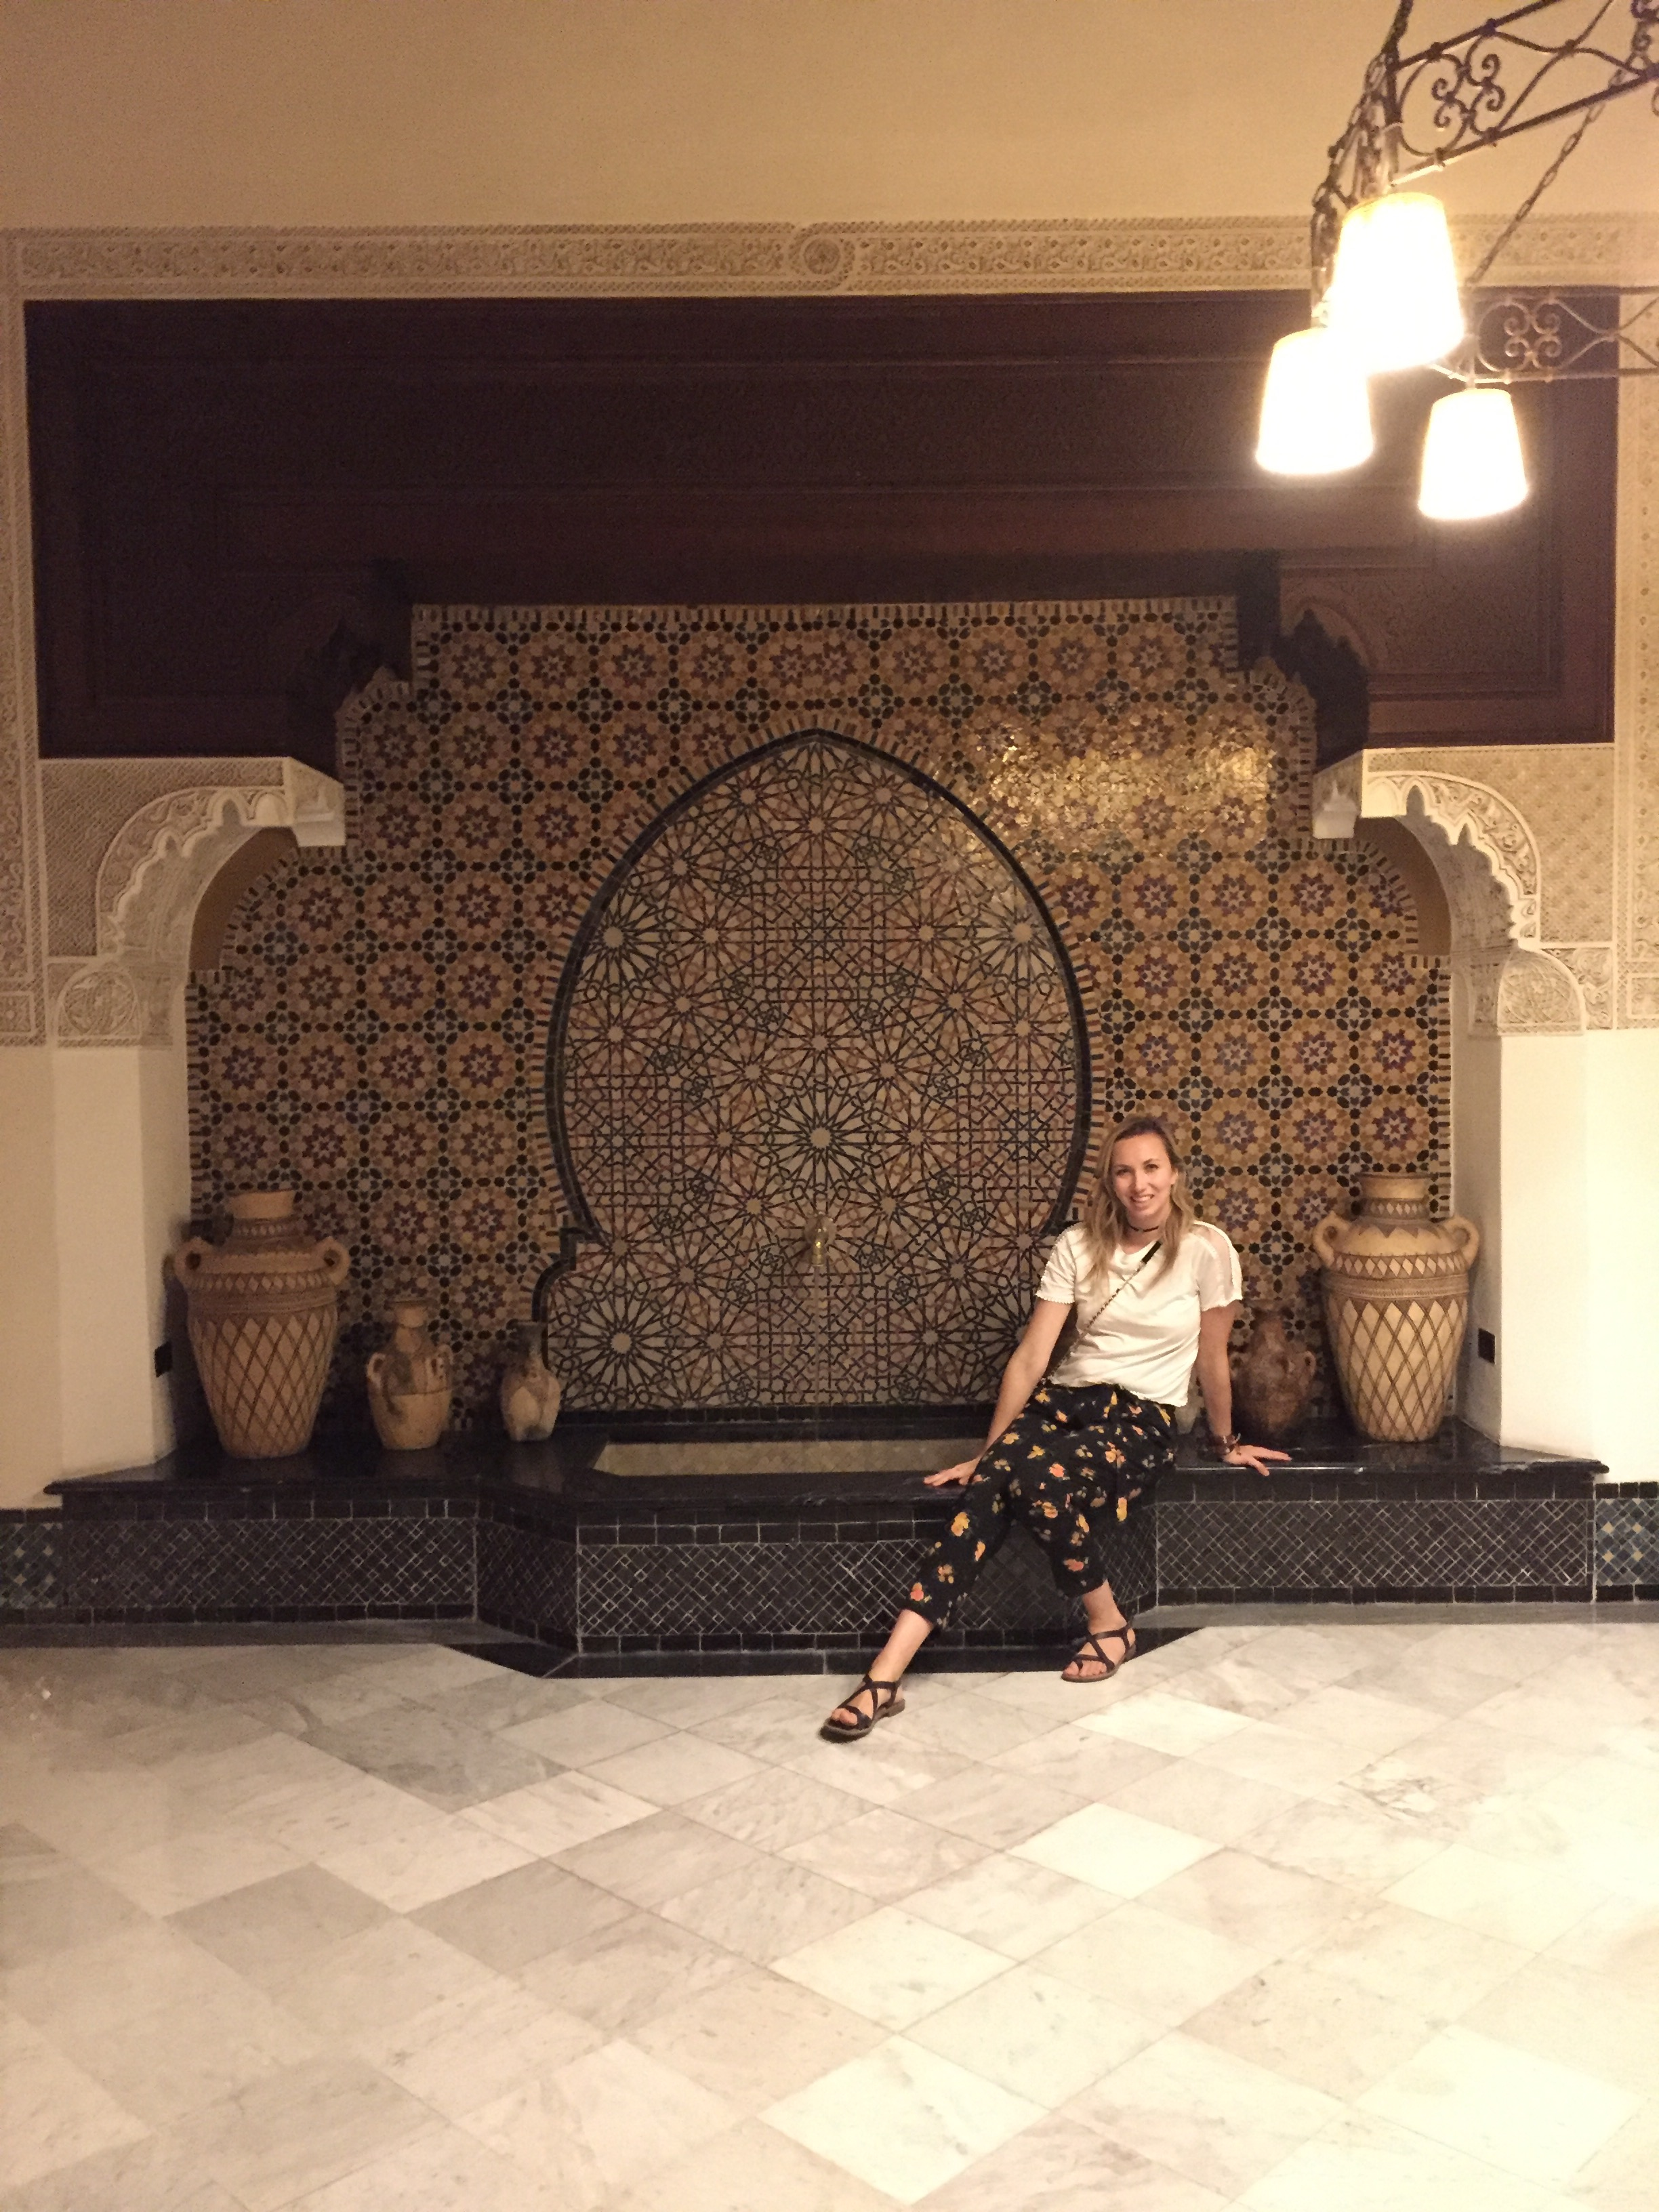 The luxury achieved in Morocco is unparalleled - take a look at the intricate details seen at Mamounia